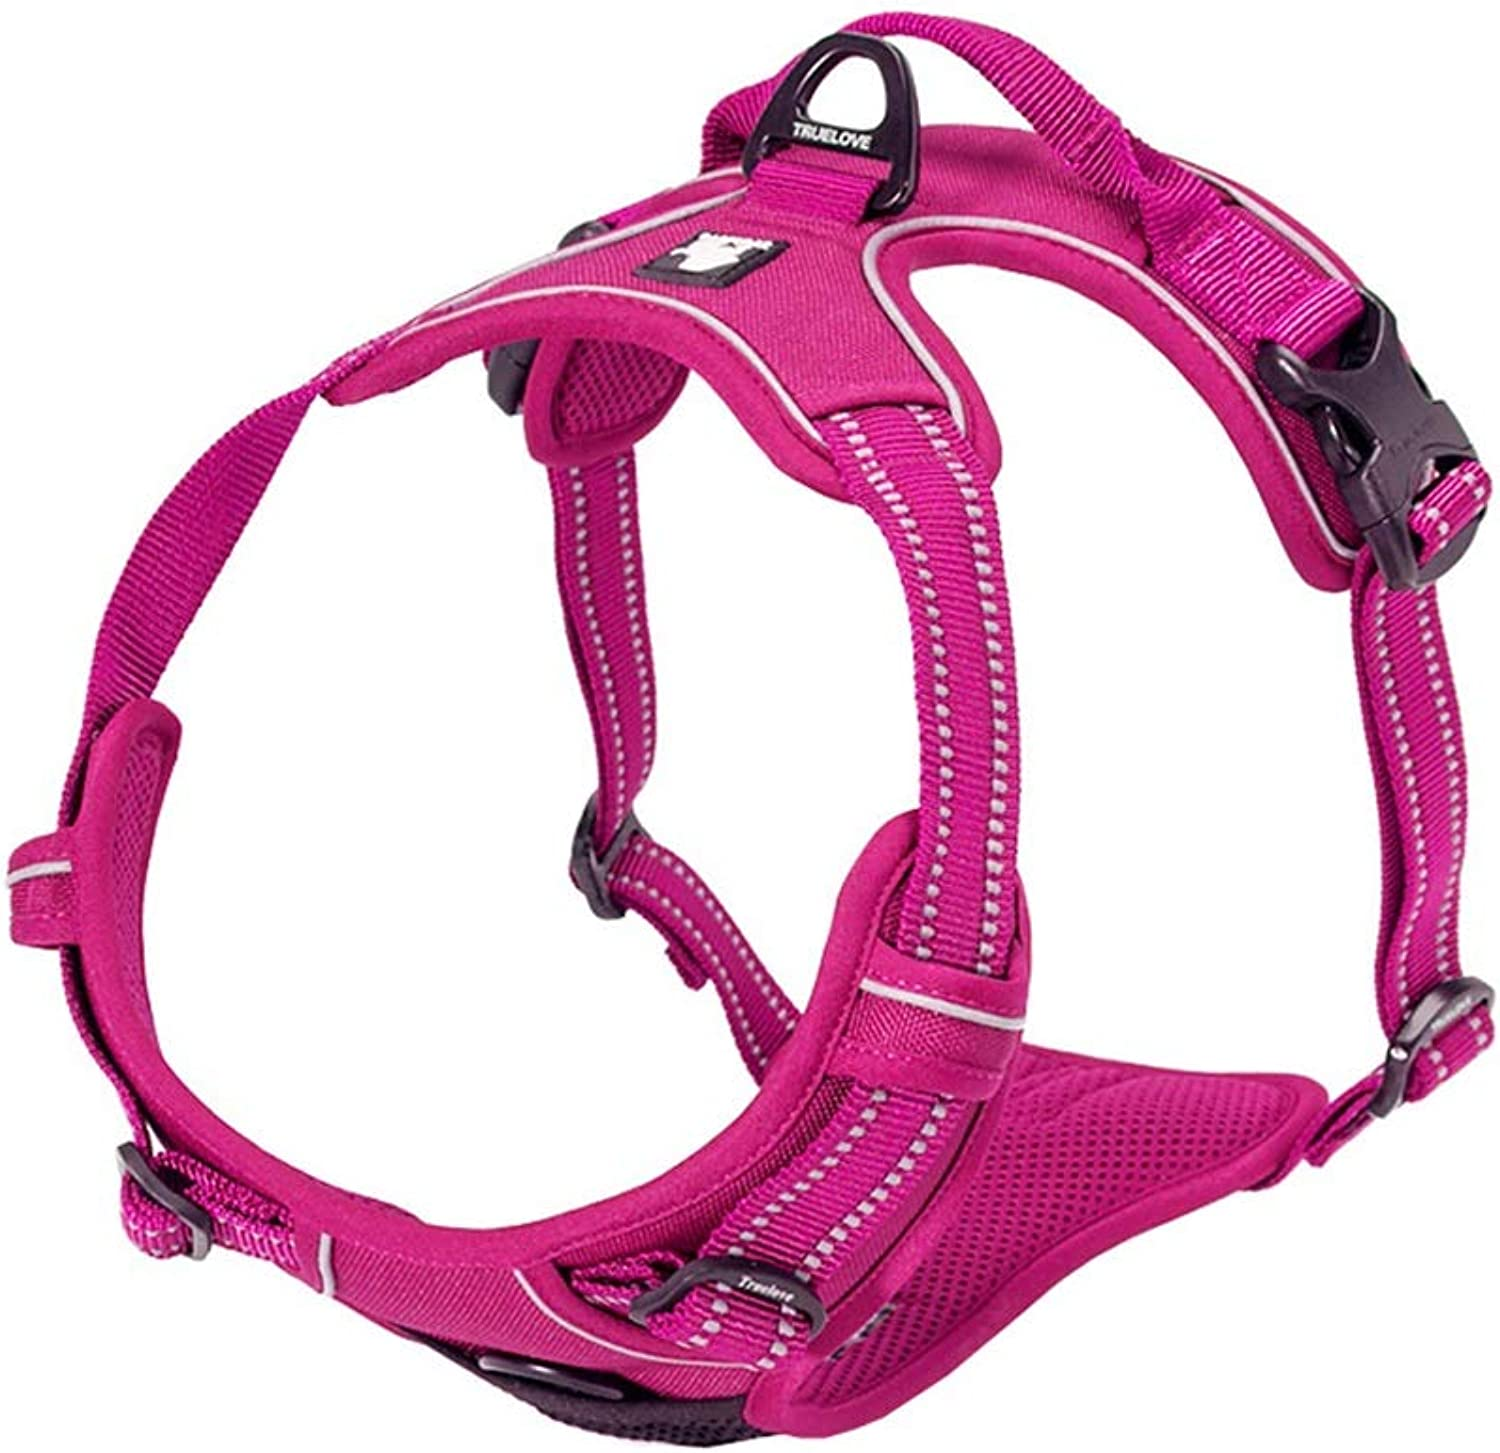 Ryan Dog Vest Harness, Pet Chest Strap Leash For Teddy golden Retriever Traction Adjustable Cat Supplies Buffering Comfortable Breathable Harness (color   pinkred, Size   M)